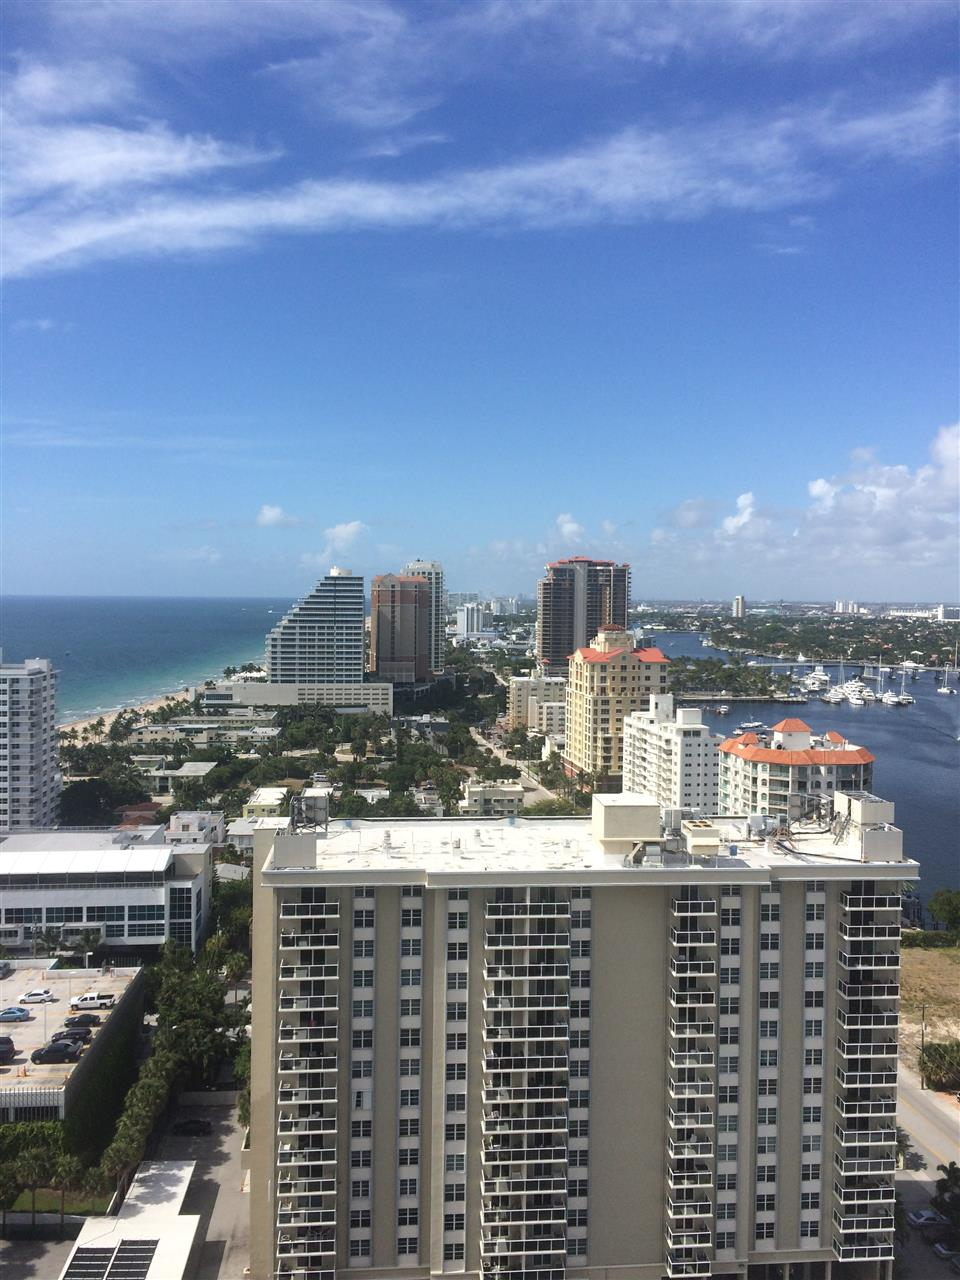 Fort Lauderdale beach and intracoastal from the top of the W hotel